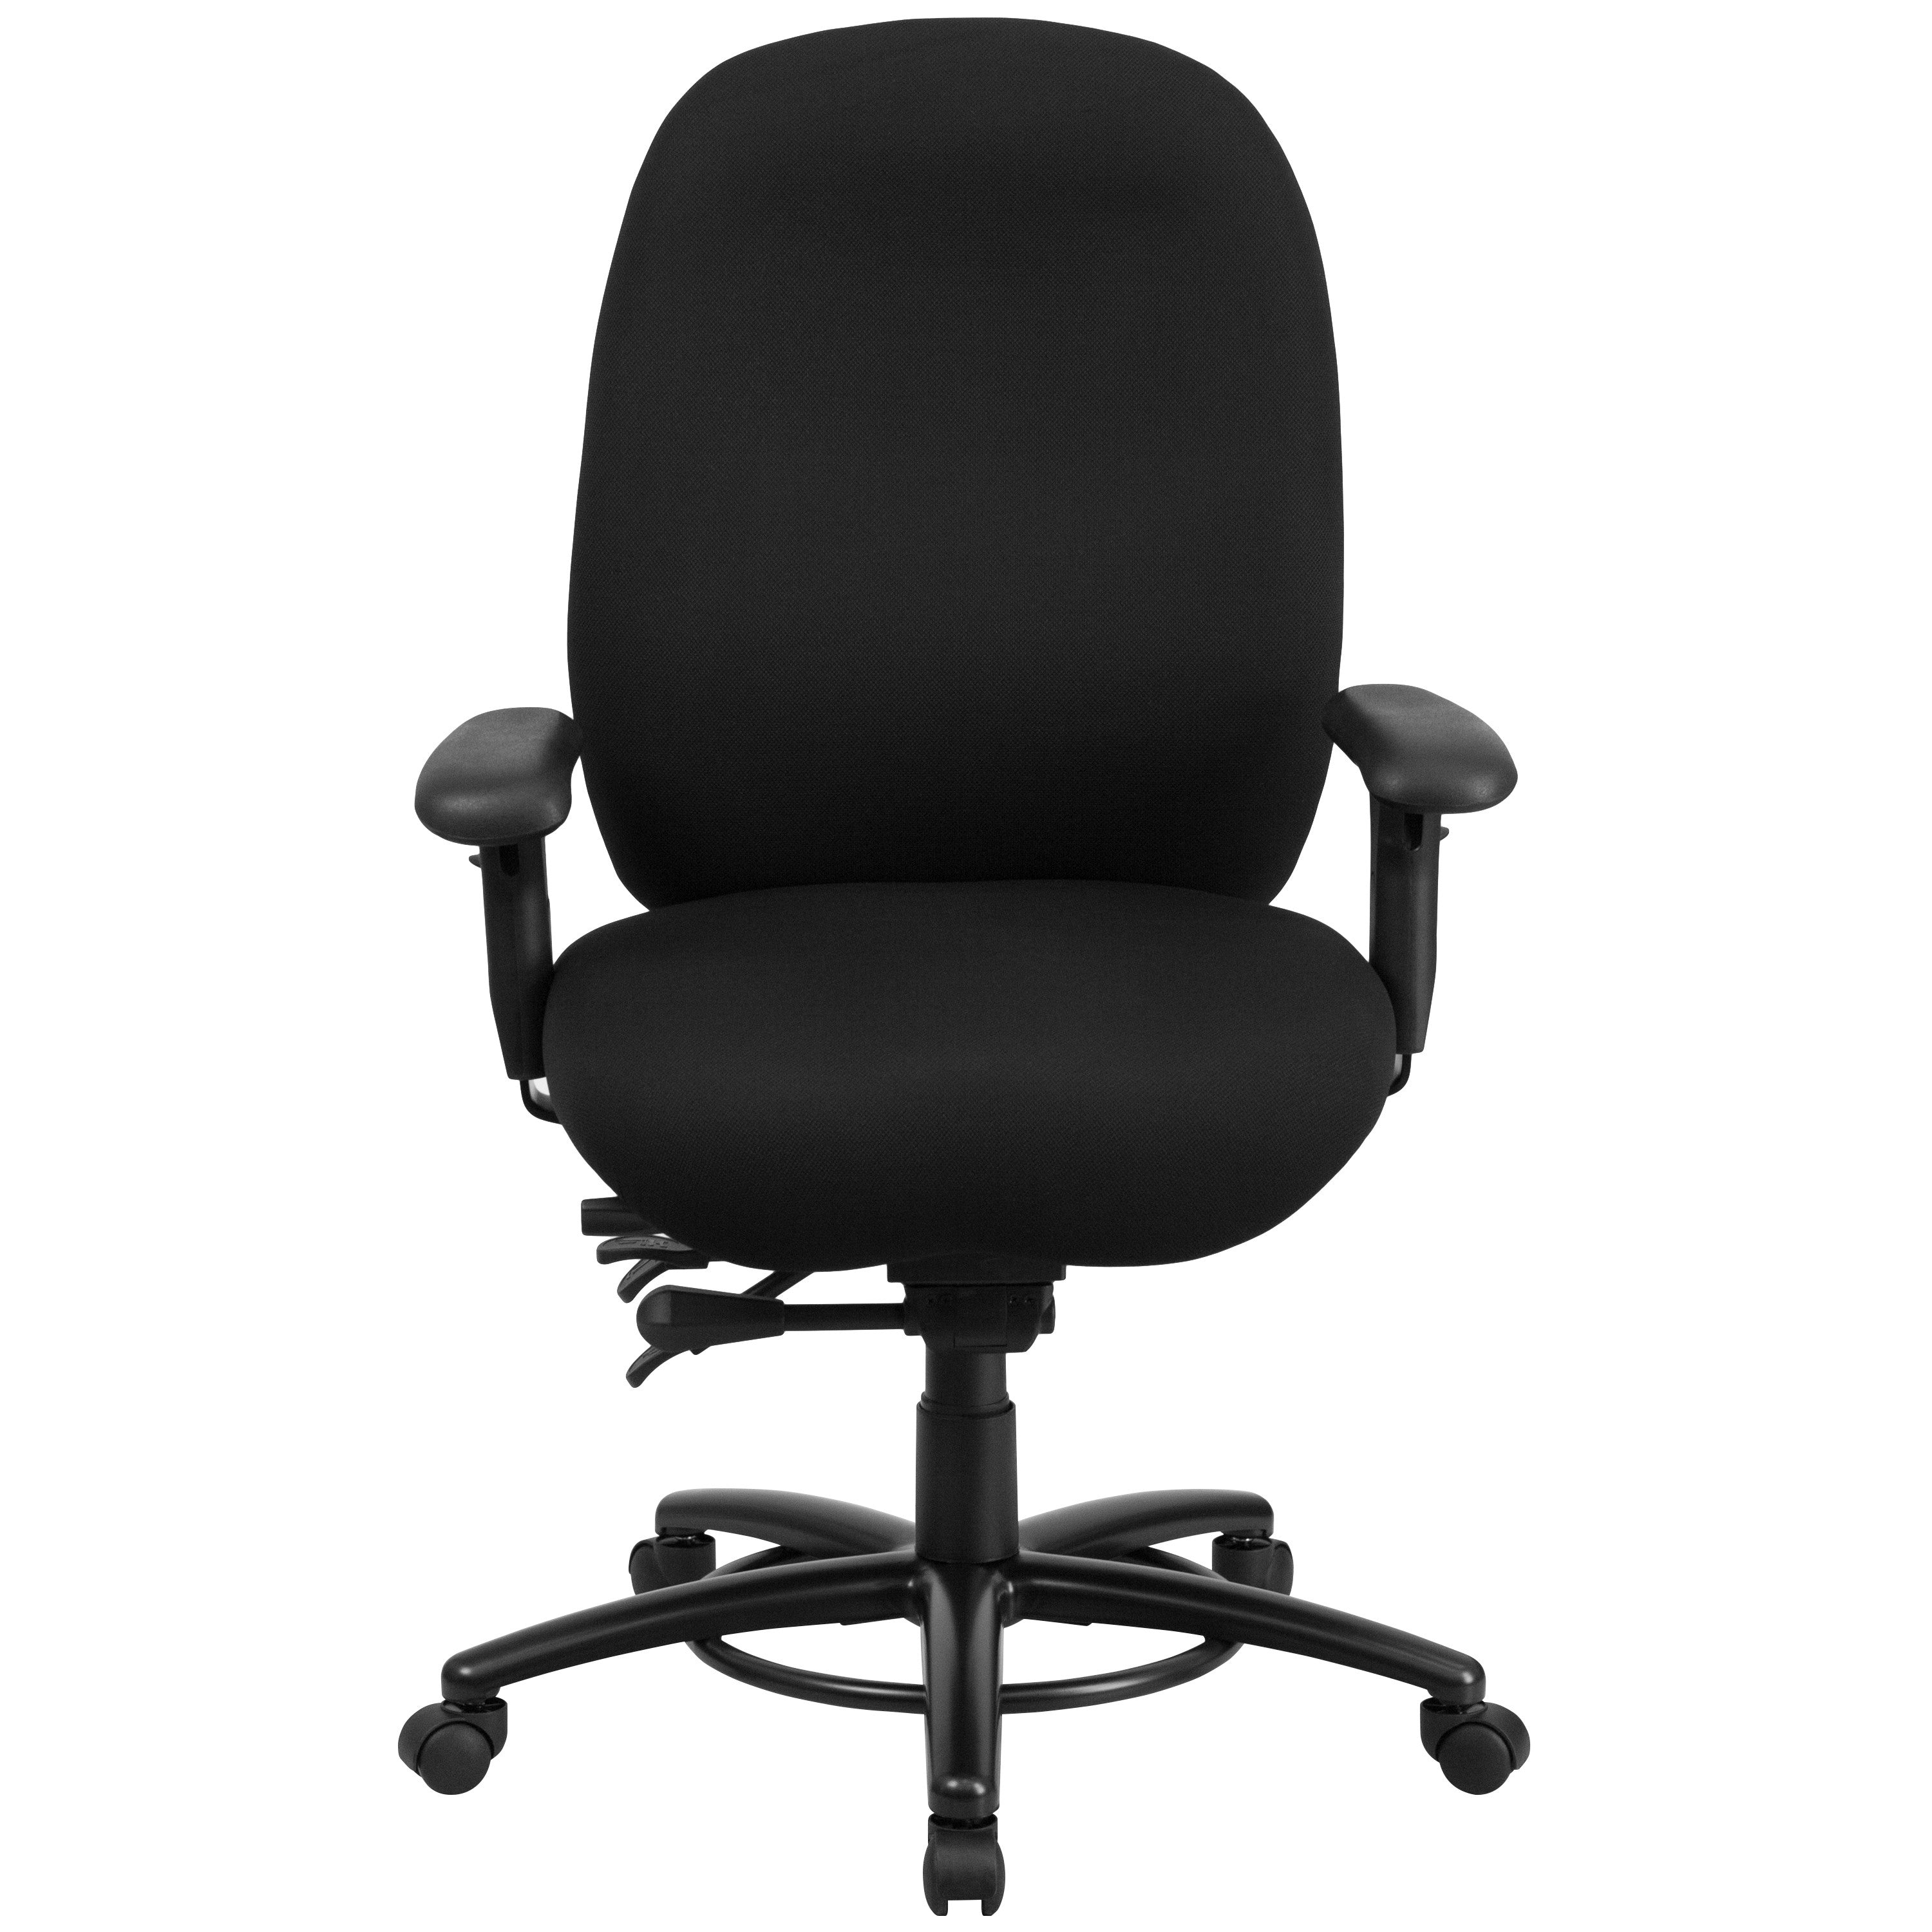 24 7 fice Chairs Affordable and Durable Great for Call